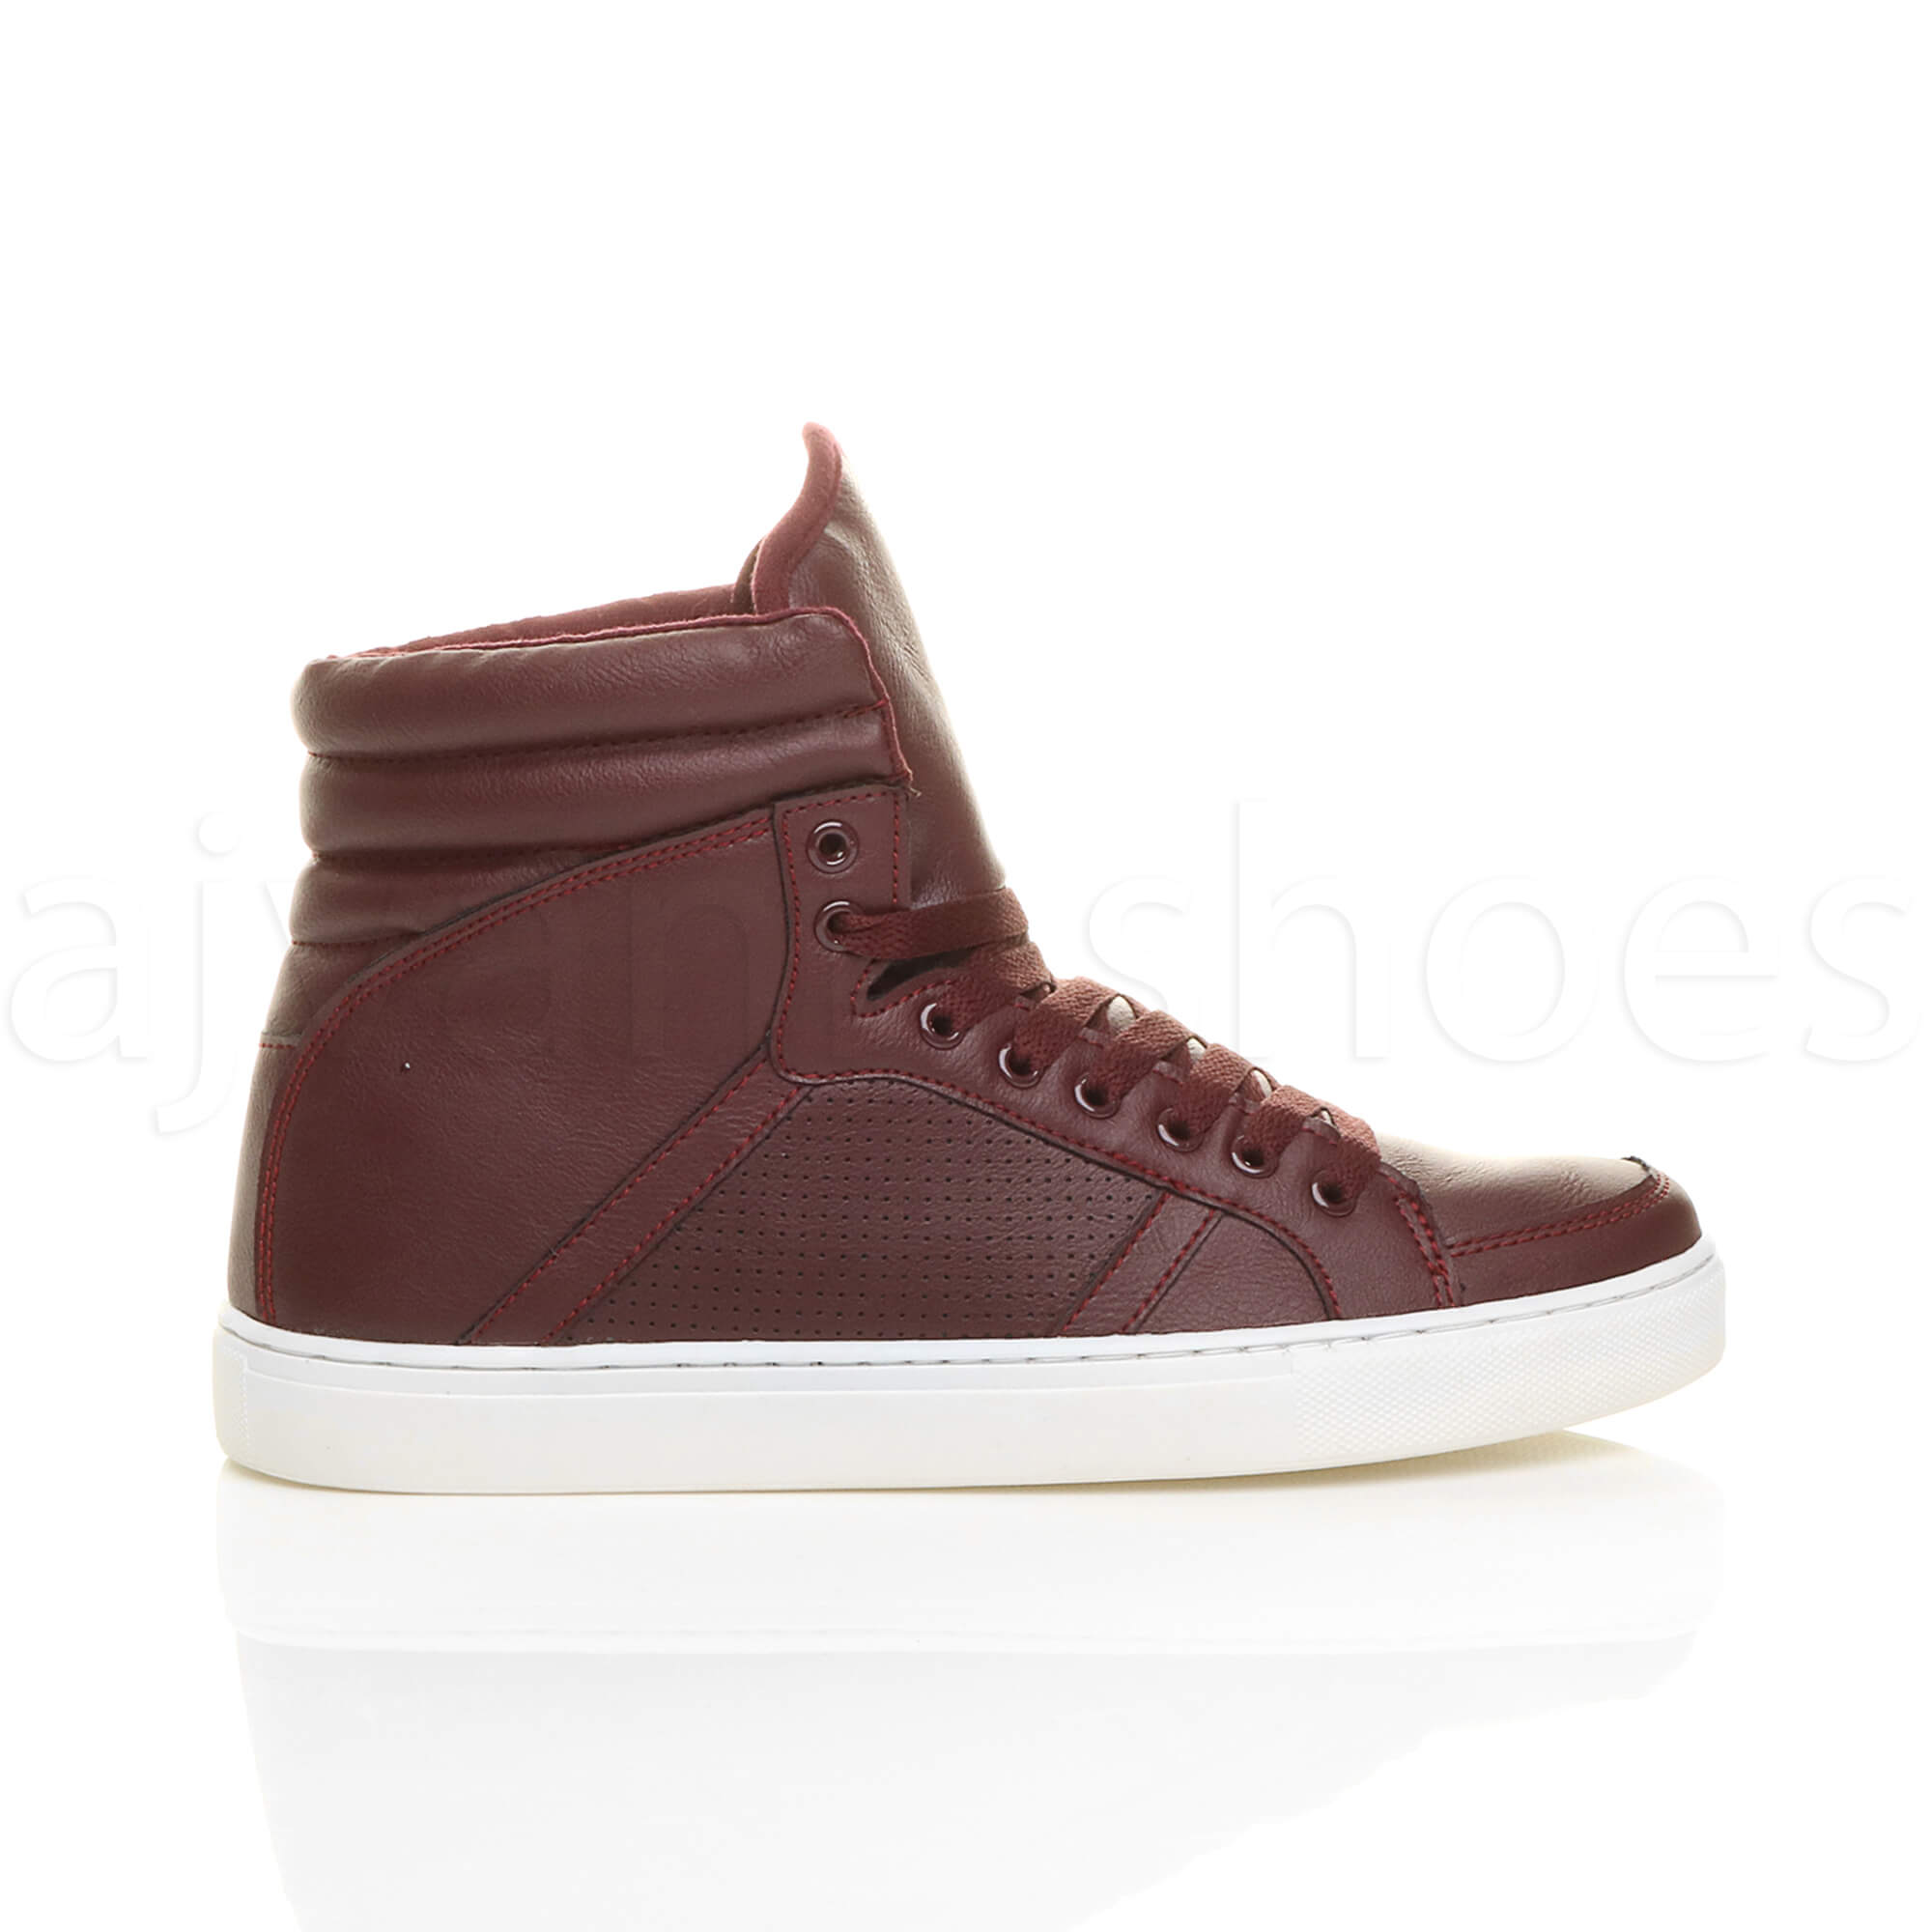 MENS-LACE-UP-CASUAL-FLAT-HI-HIGH-TOP-ANKLE-BOOTS-SHOES-TRAINERS-SNEAKERS-SIZE thumbnail 10